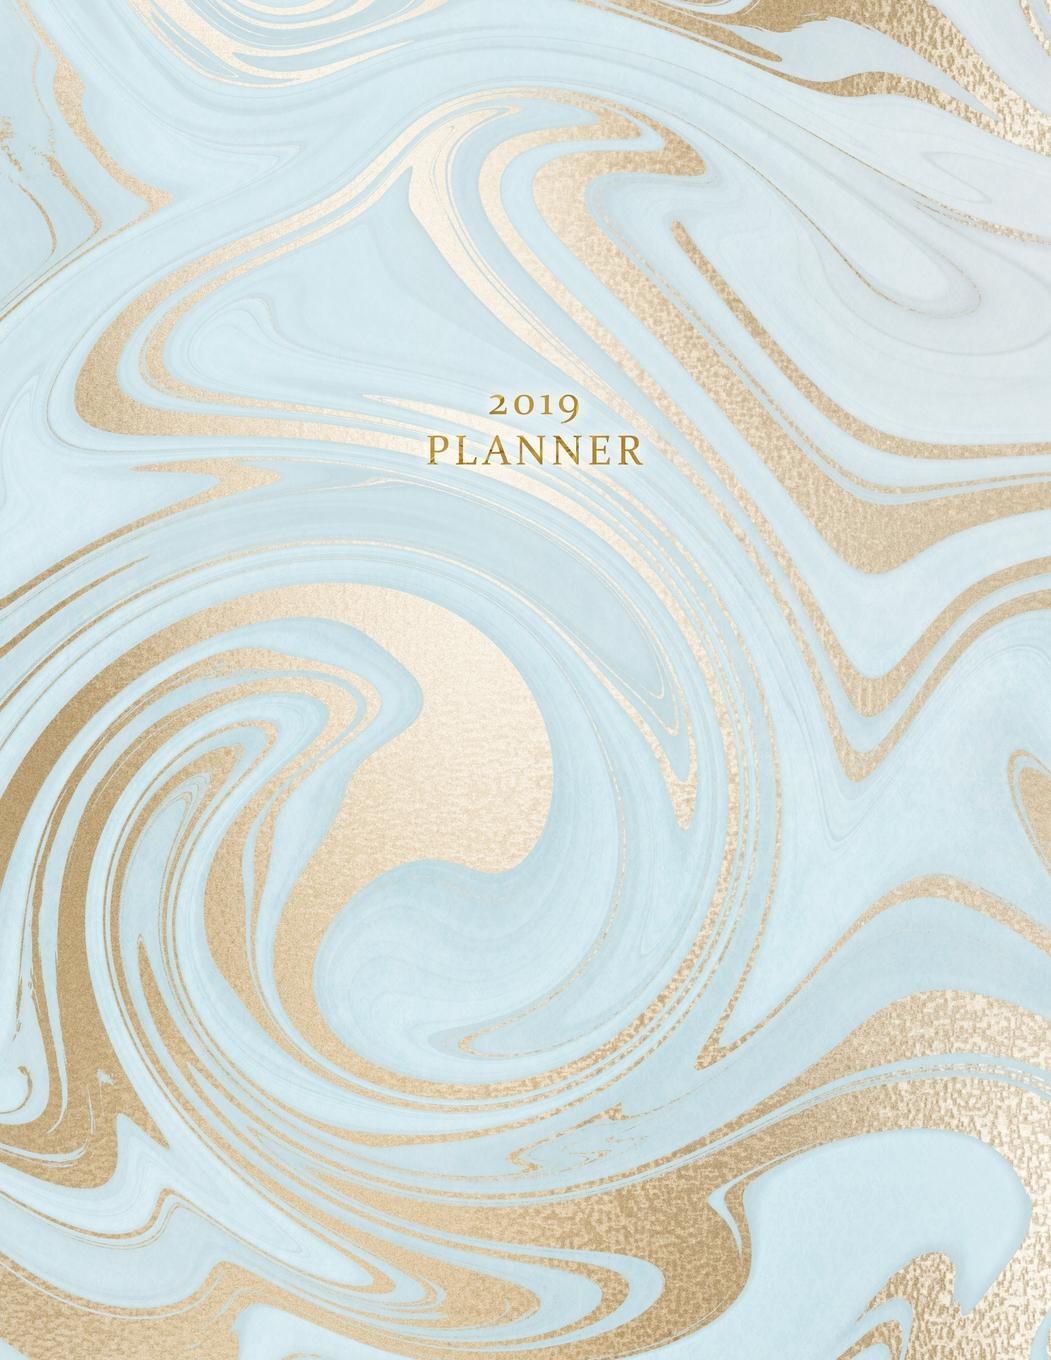 2019 Planner: Weekly and Monthly Planner Calendar Organizer Agenda (January 2019 to December 2019) Sky Blue... by Amazon Digital Services LLC - Kdp Print Us